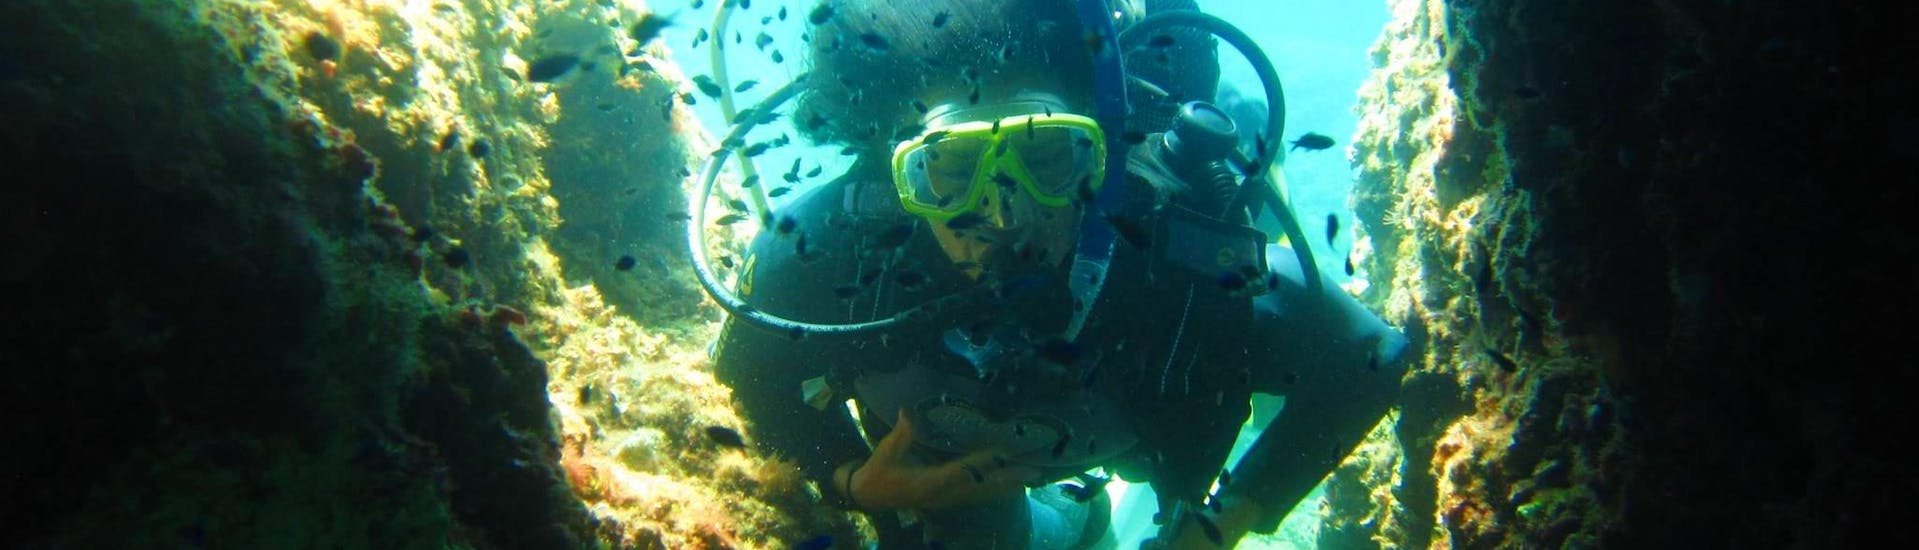 A certified diver is exploring the reefs around Corfu during a Guided Boat Dive in Megachoros Reef for Certified Divers with Herkules Marine Activities Corfu.